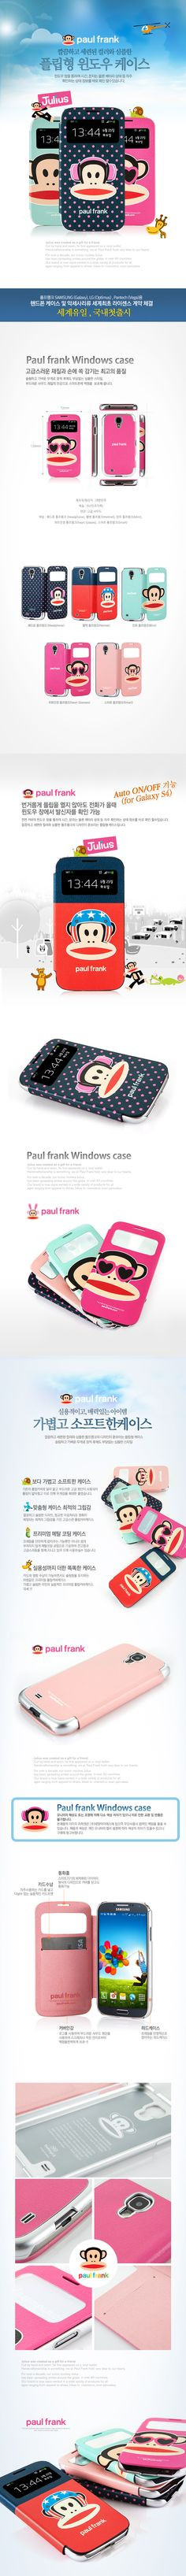 Paul Frank Window Flip Case : Samsung Galaxy S3, S4, Note2 and 3